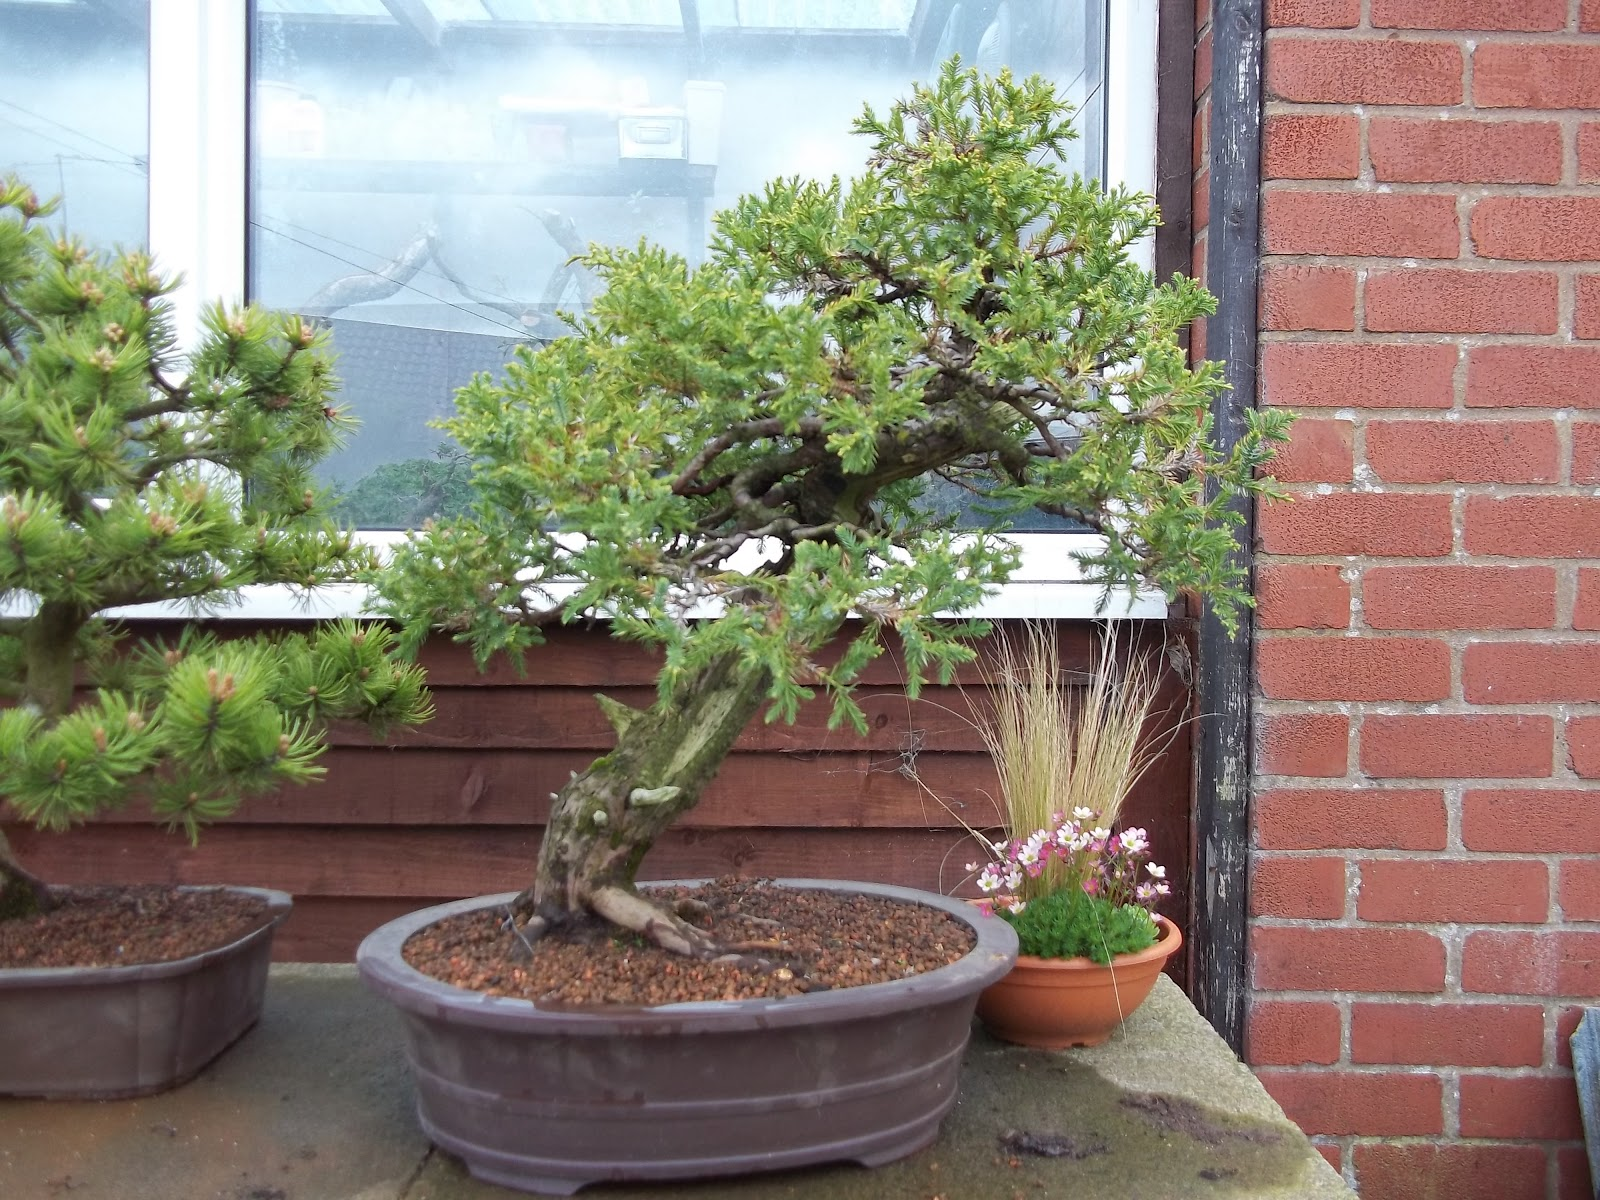 Ronin Bonsai April 2012